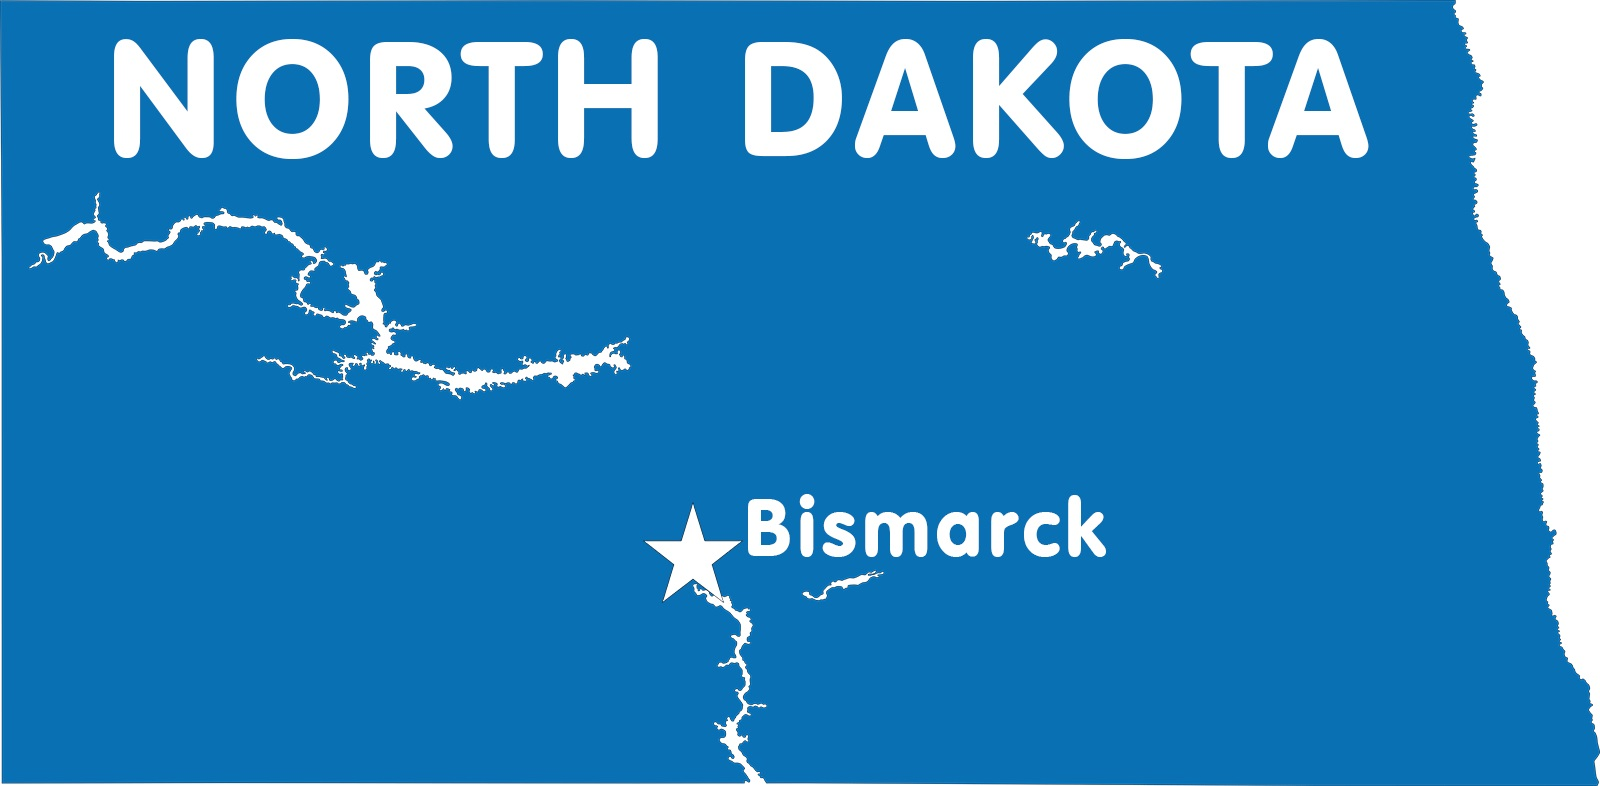 North Dakota Capital Map | Large Printable High Resolution and Standard Map